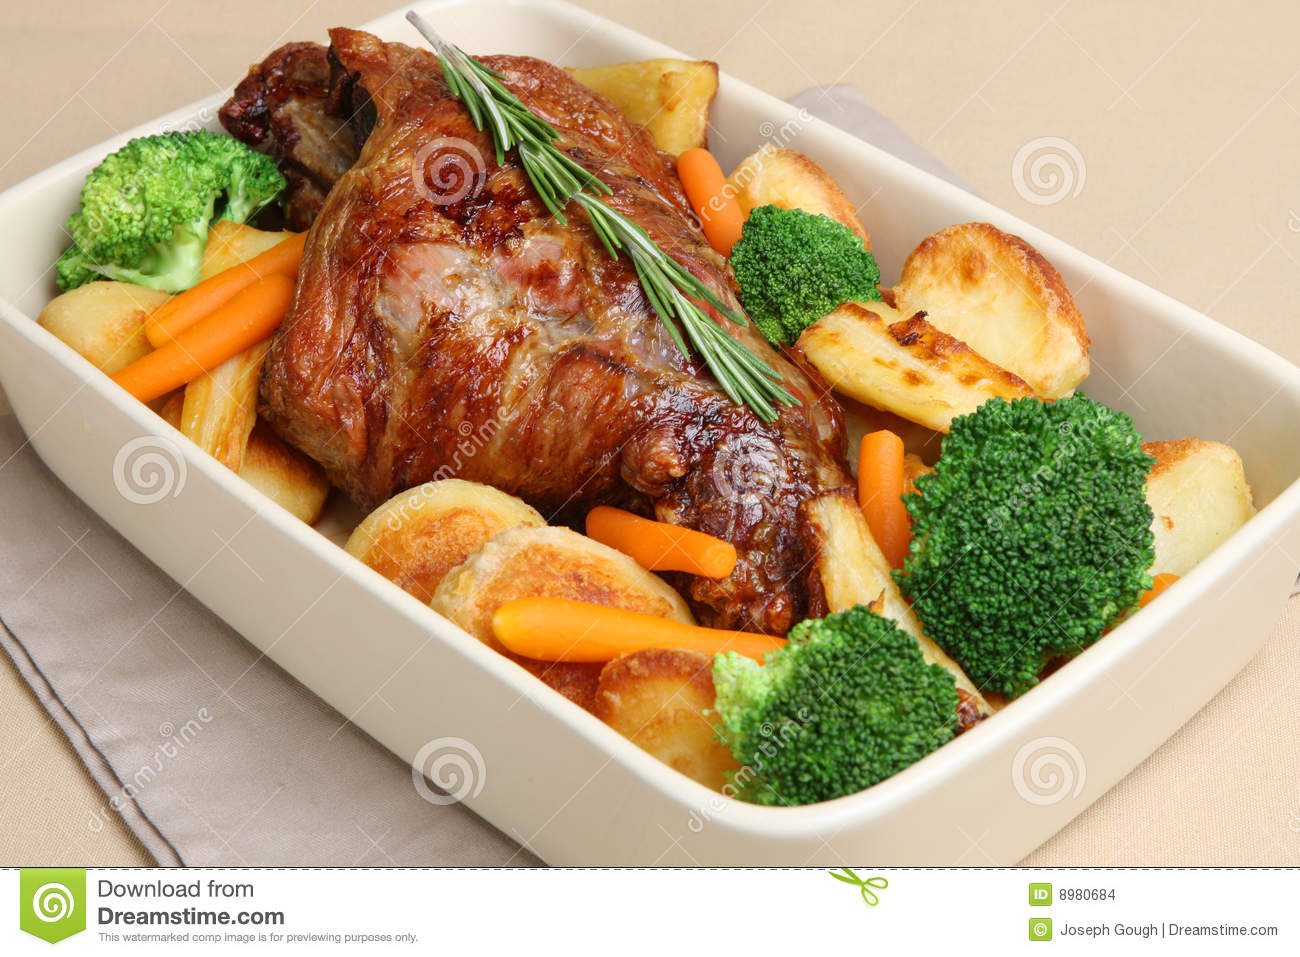 Roast leg of lamb with roast potatoes, parsnips, broccoli and carrots.